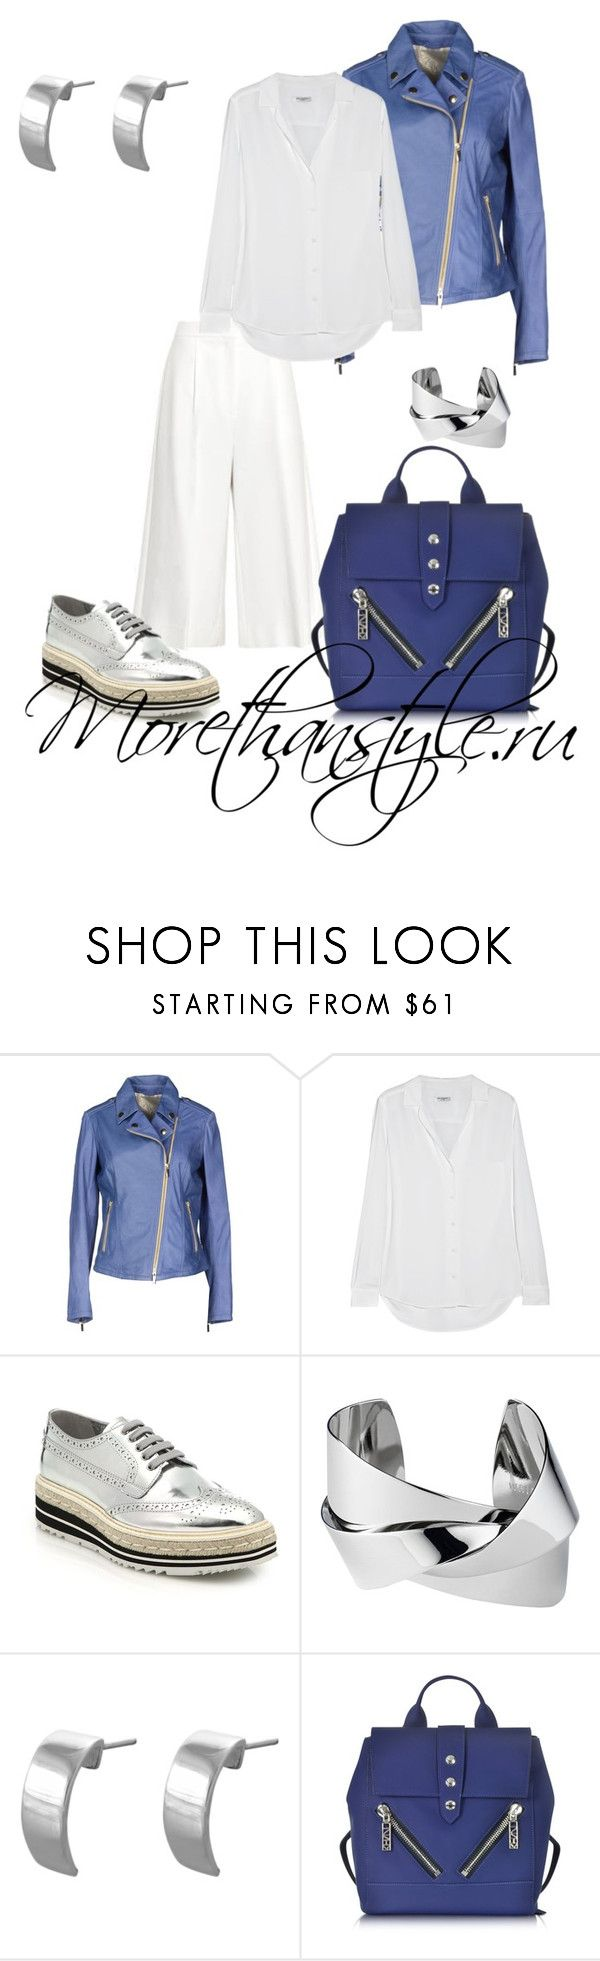 """""""Casual outfit"""" by smileggal on Polyvore featuring мода, Gimo's, Equipment, Prada, Whistles, Edge Only и Kenzo"""